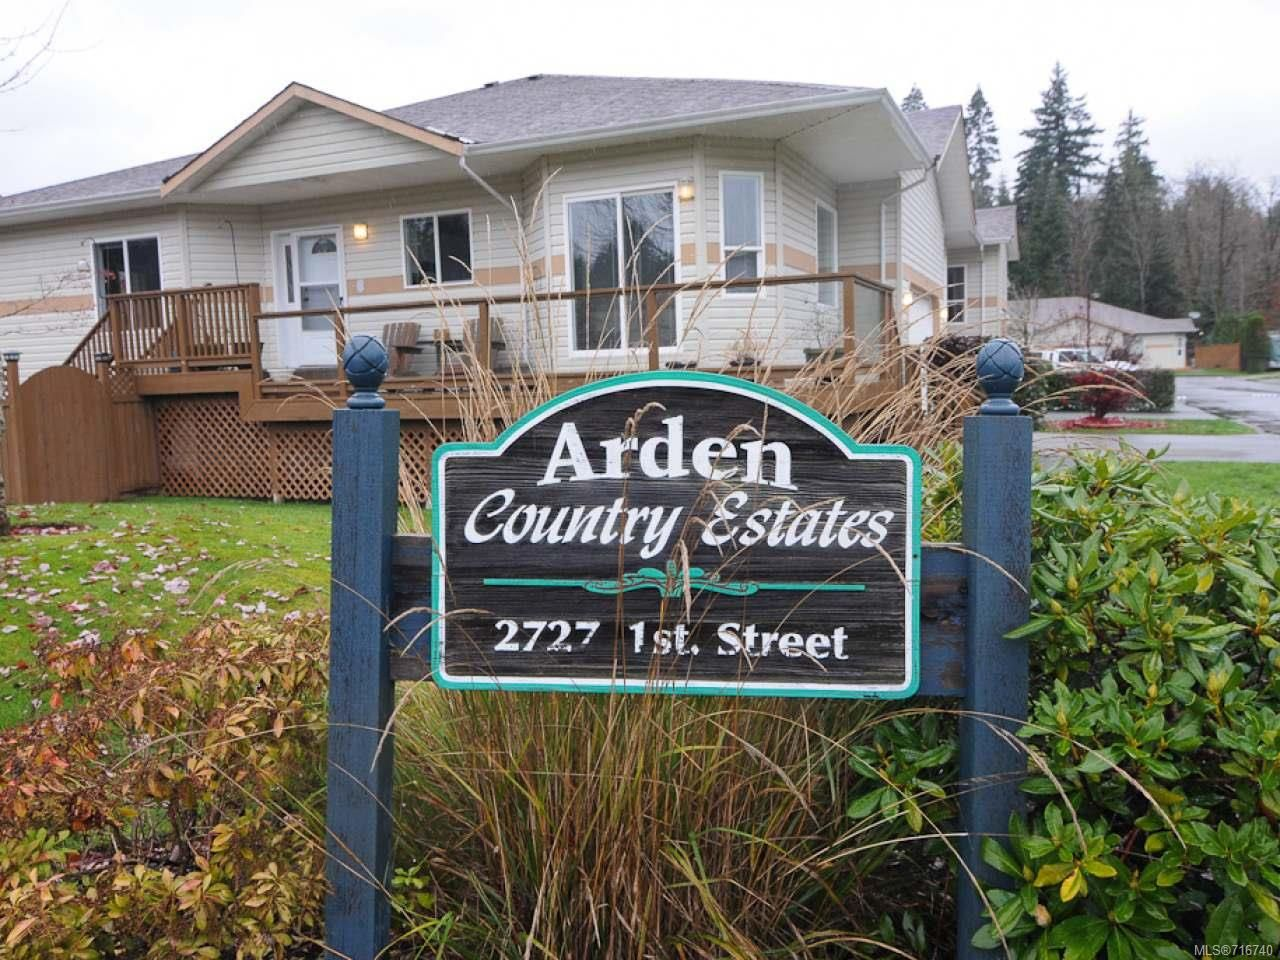 Main Photo: 201 2727 1st St in COURTENAY: CV Courtenay City Row/Townhouse for sale (Comox Valley)  : MLS®# 716740